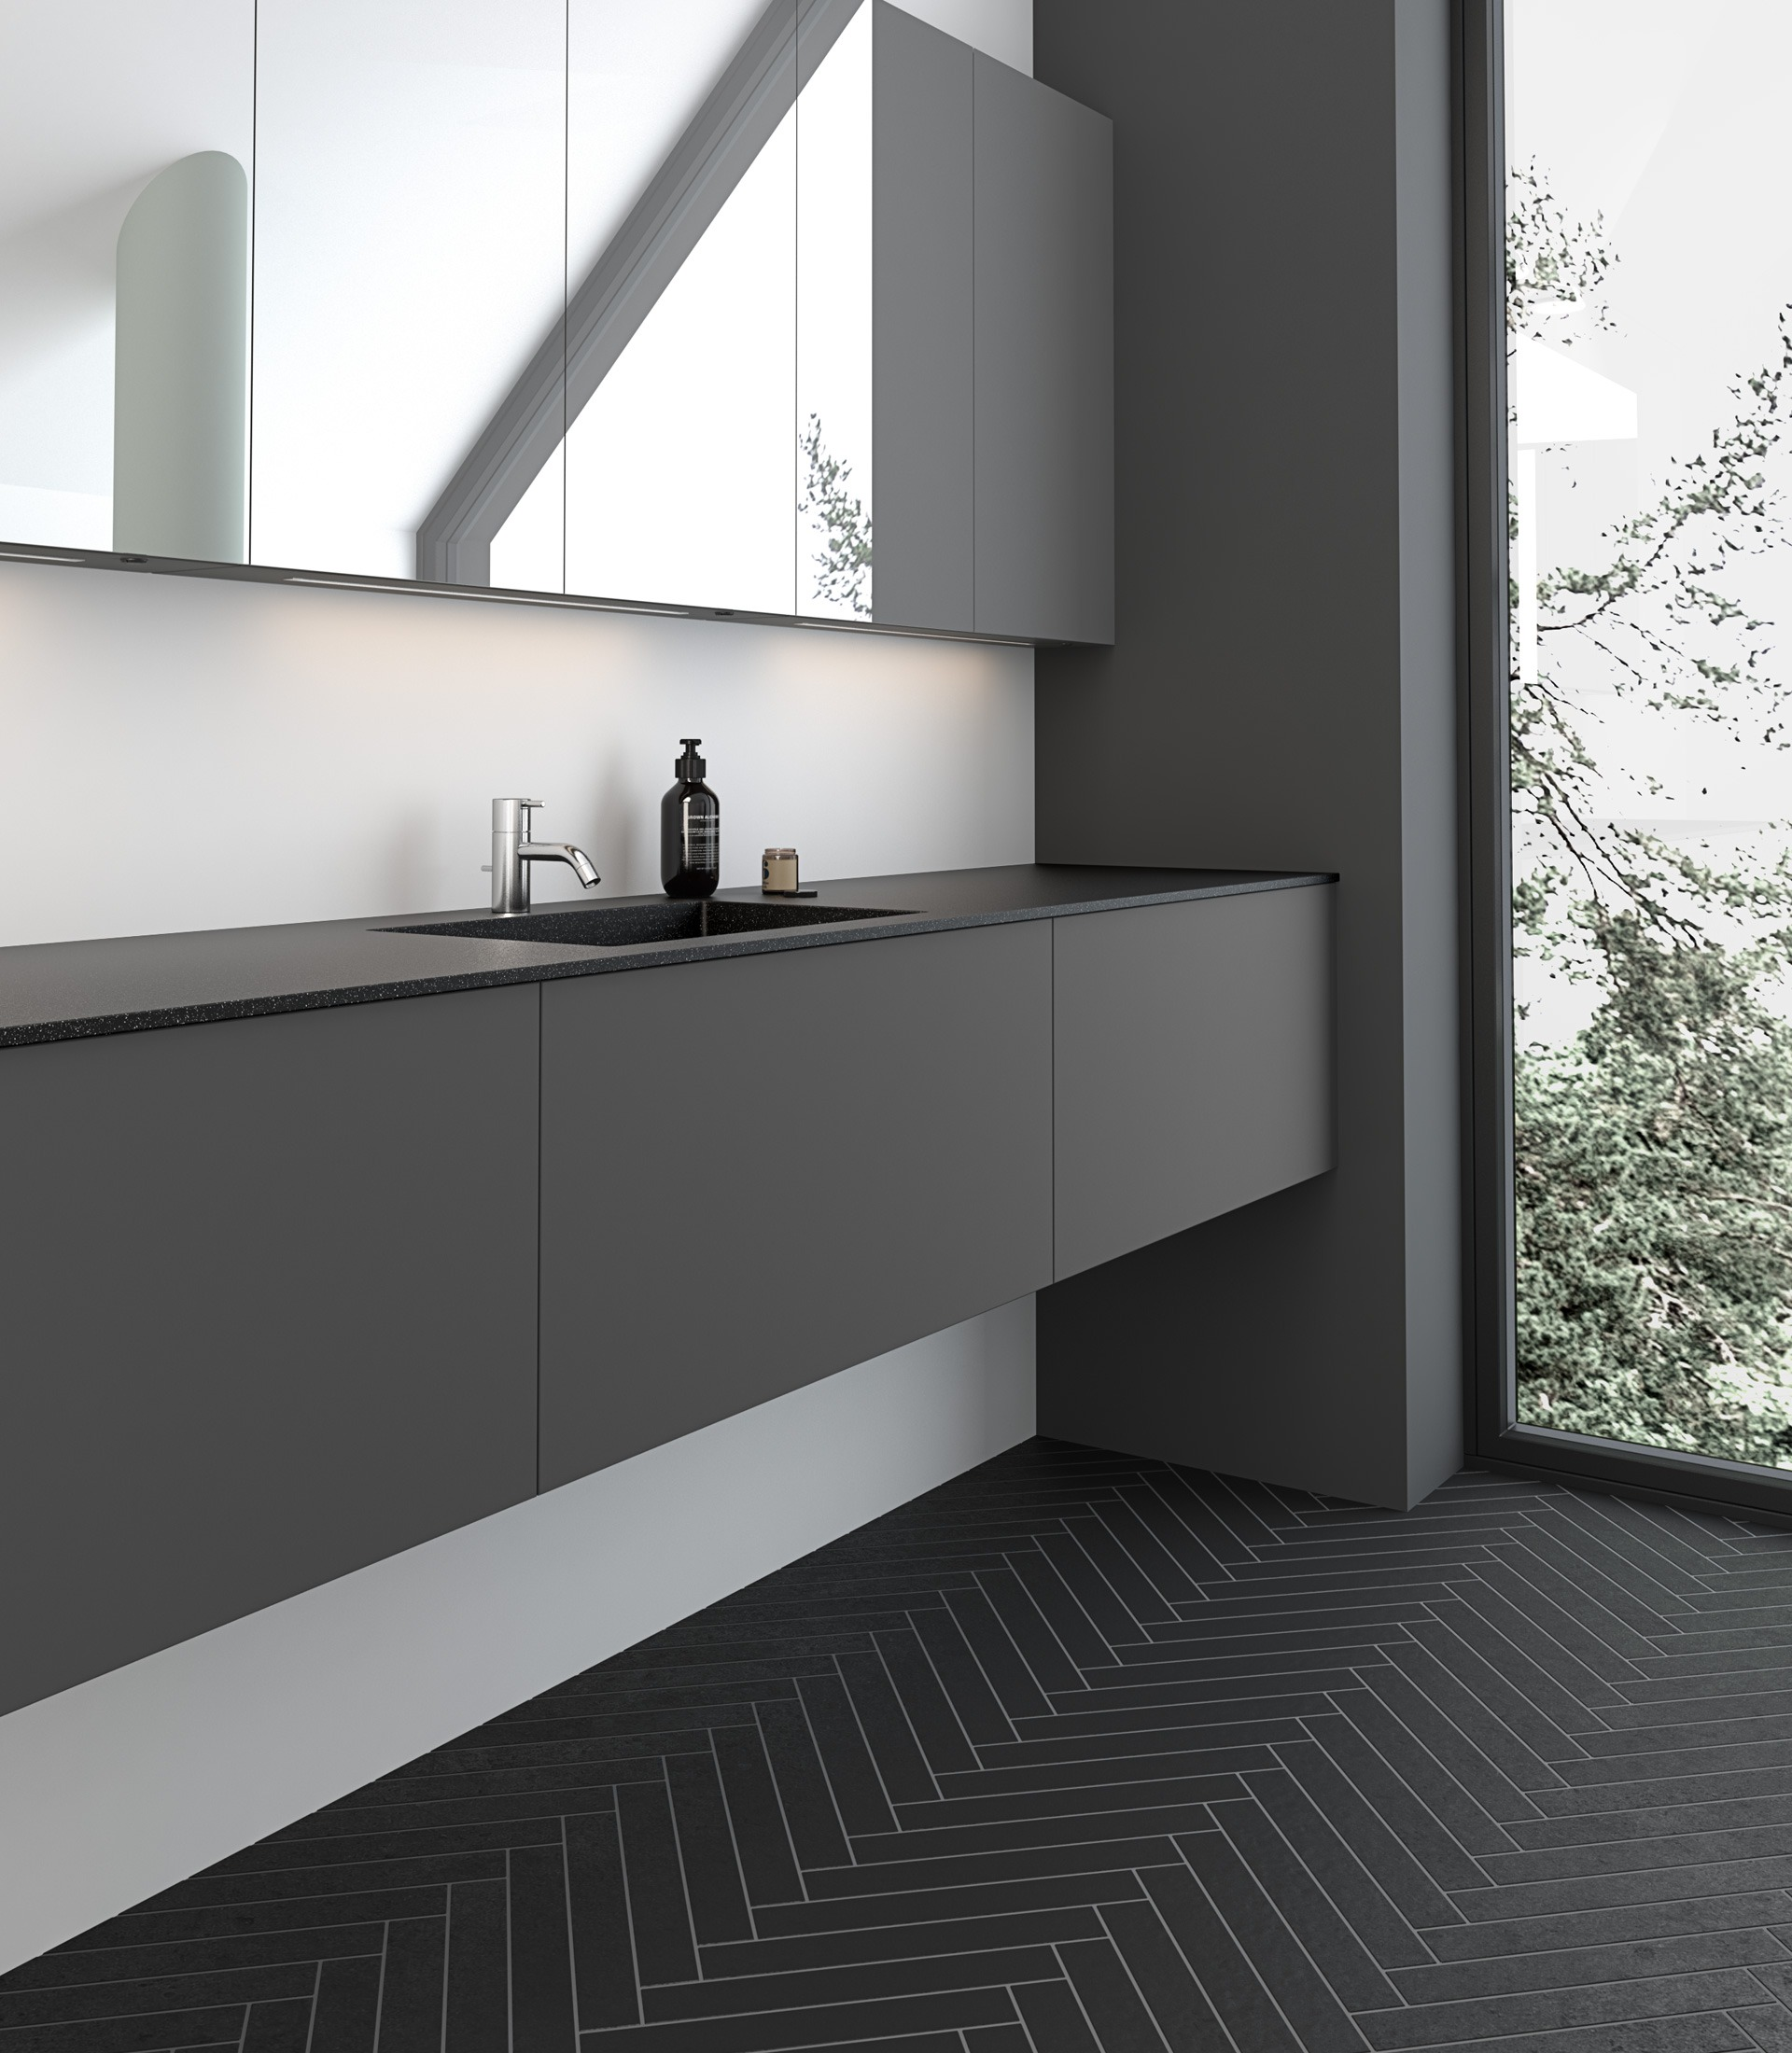 Floor tiles and furniture for bathrooms